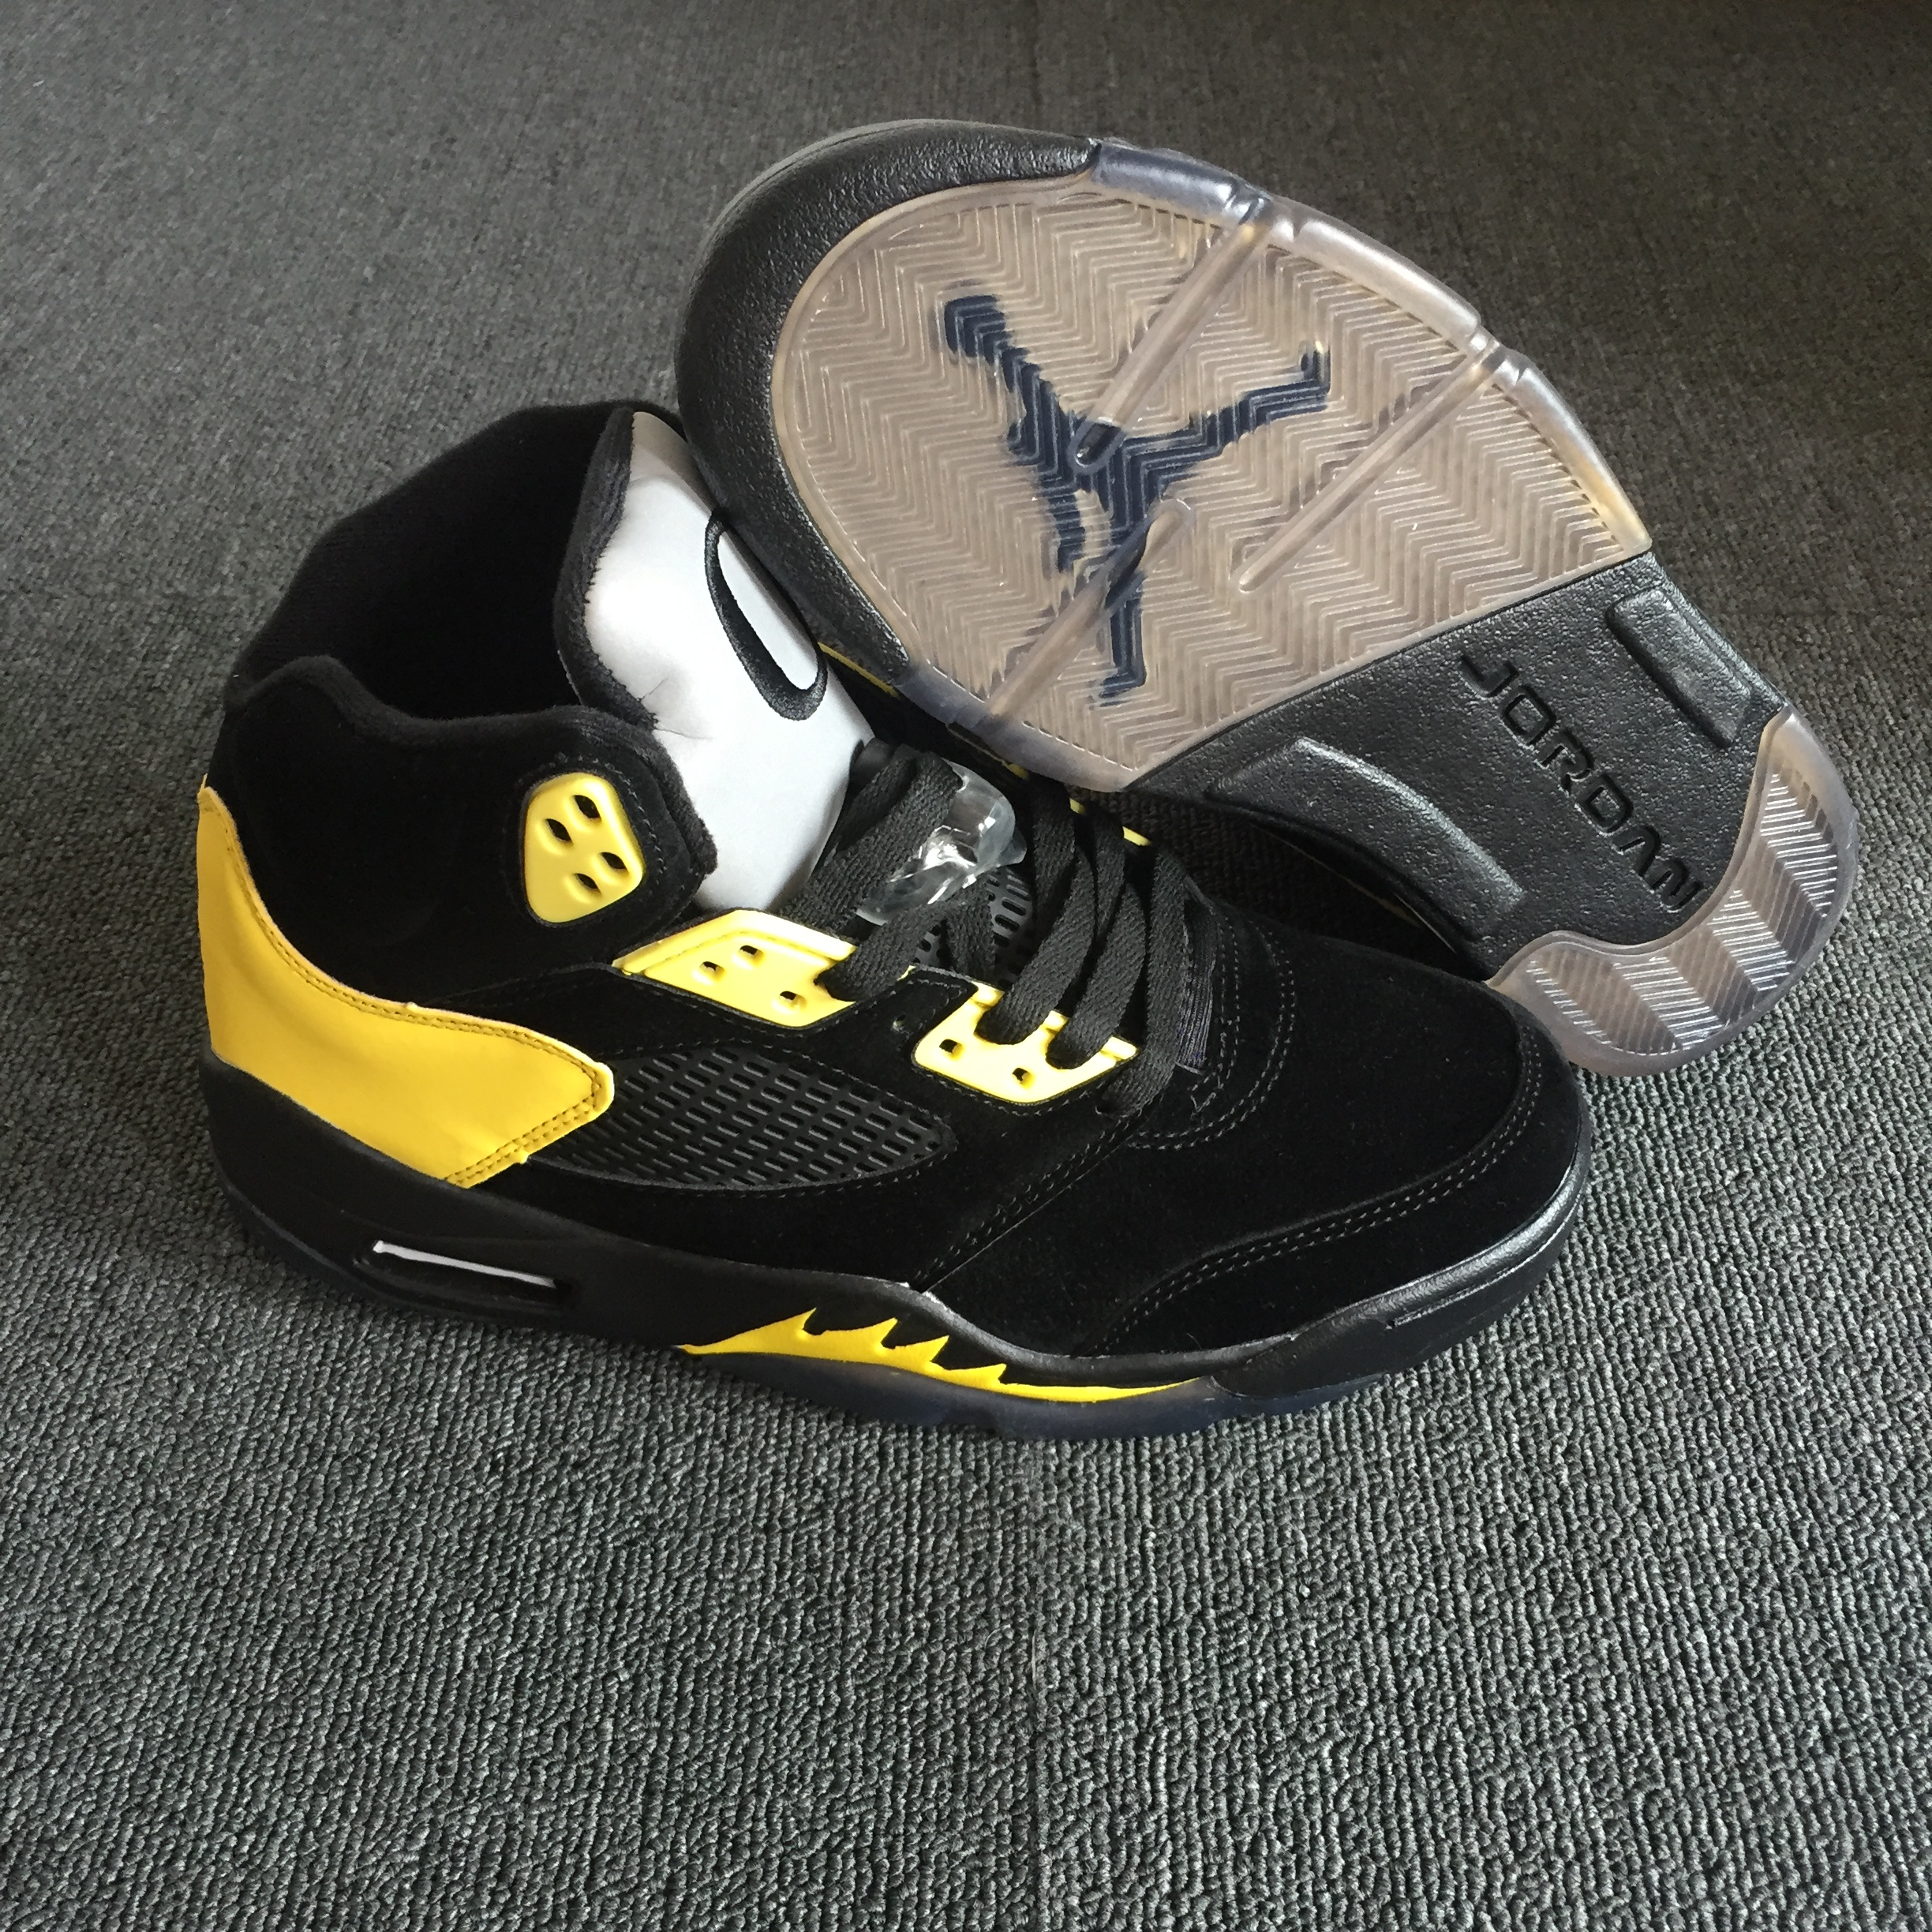 2018 Air Jordan 5 Oregon PE Black Yellow Shoes